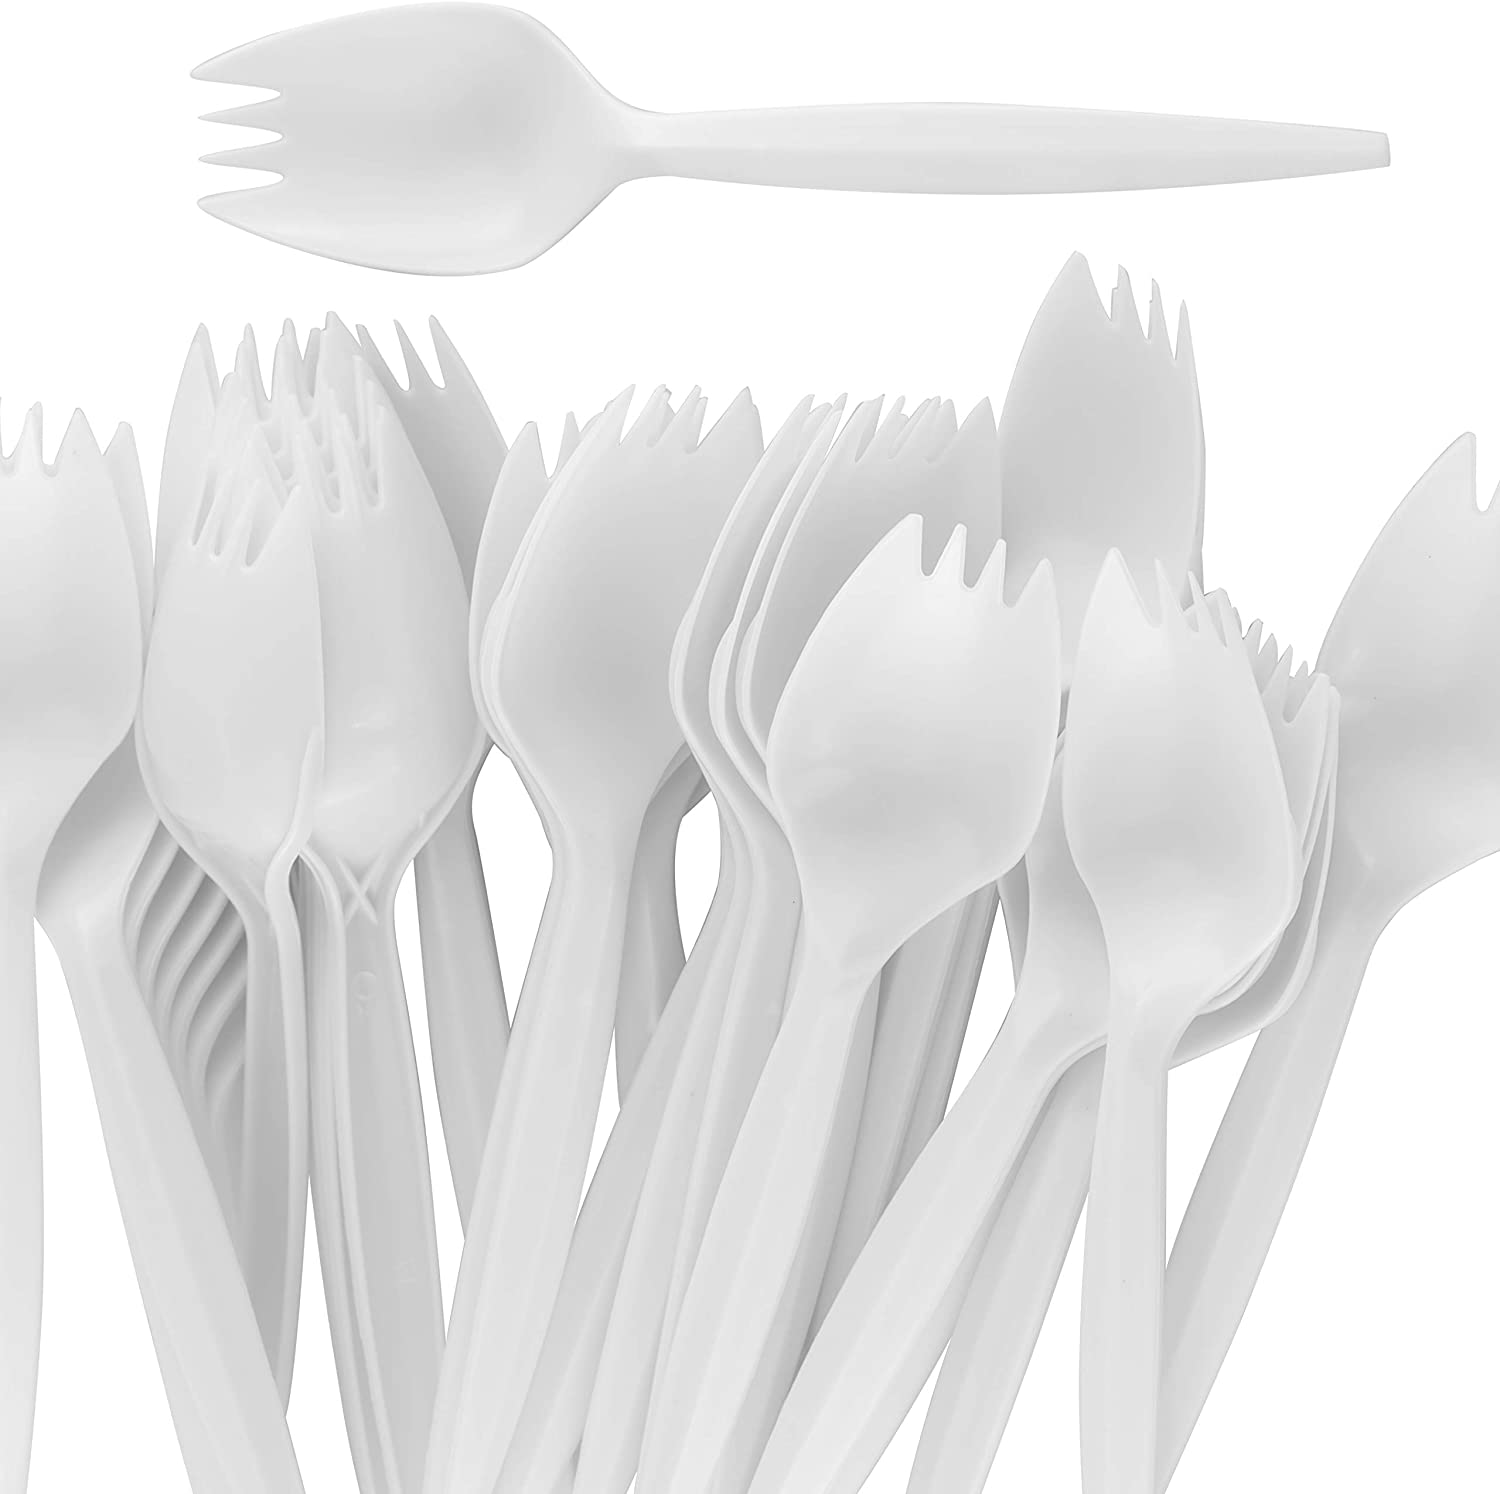 Durable BPA-Free White Disposable Sporks Recyclable Ec Be super welcome pack. 50 price